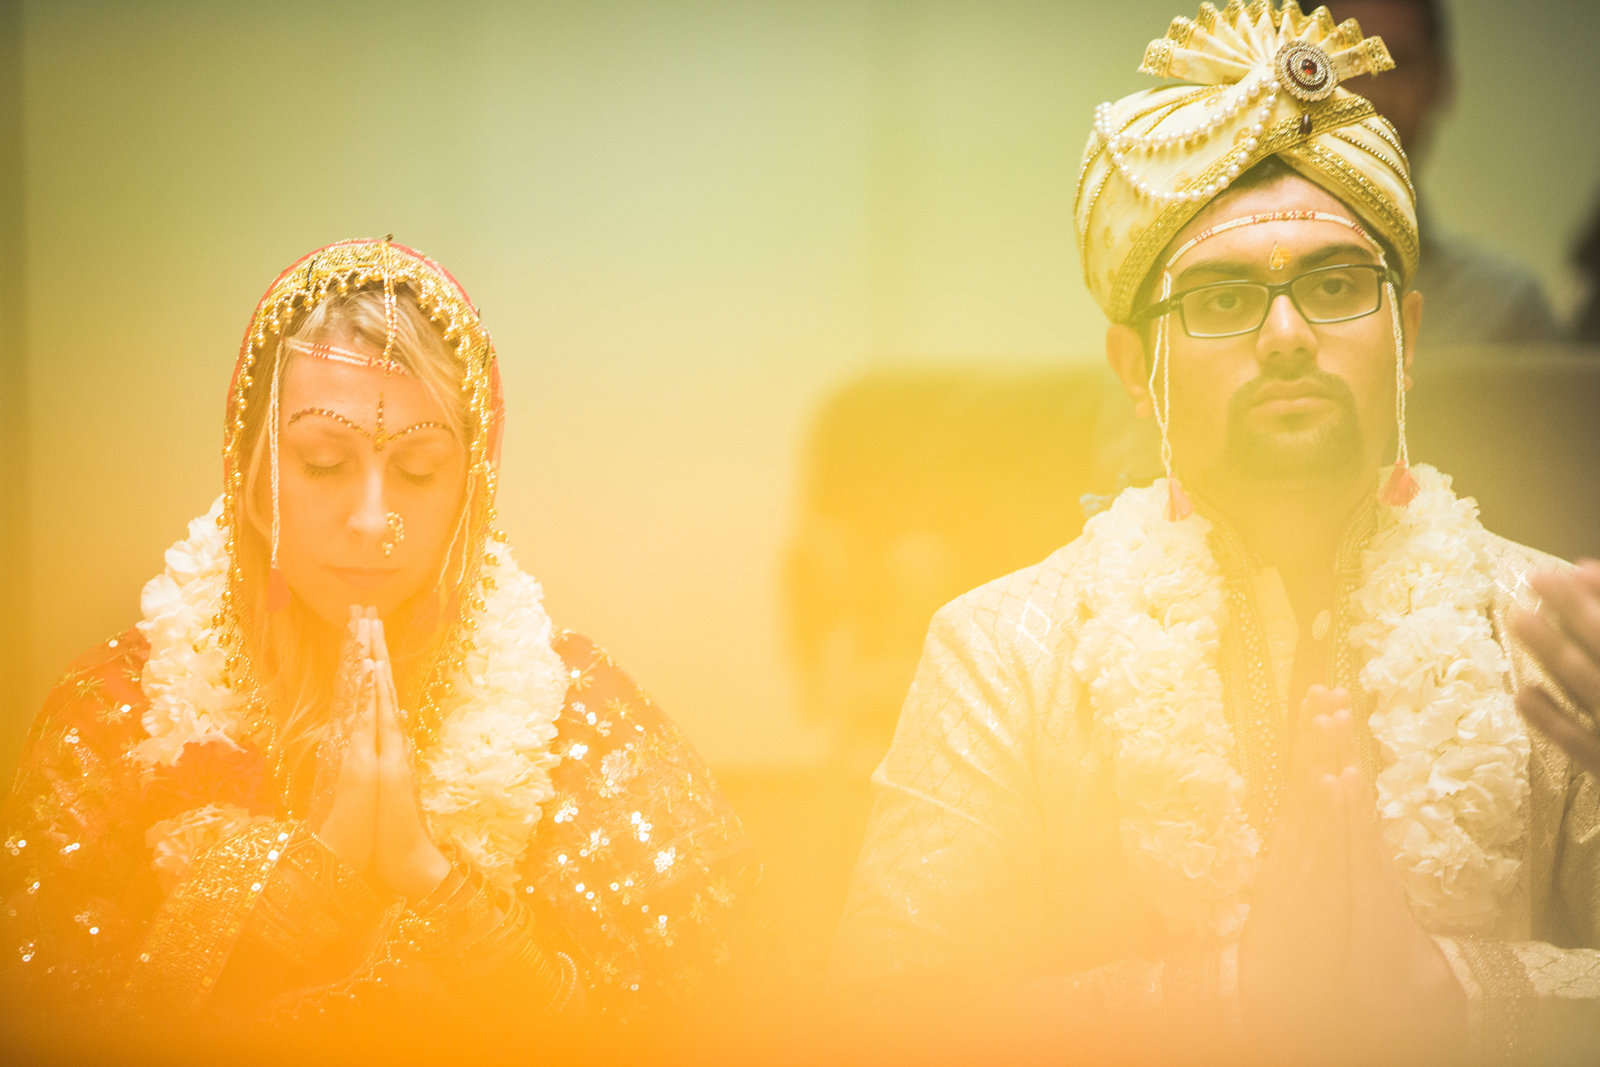 Spring Hindu wedding in Toledo Ohio at the Toledo Hindu Temple. Photo by: Adore Wedding Photography - Toledo Ohio Wedding Photographers